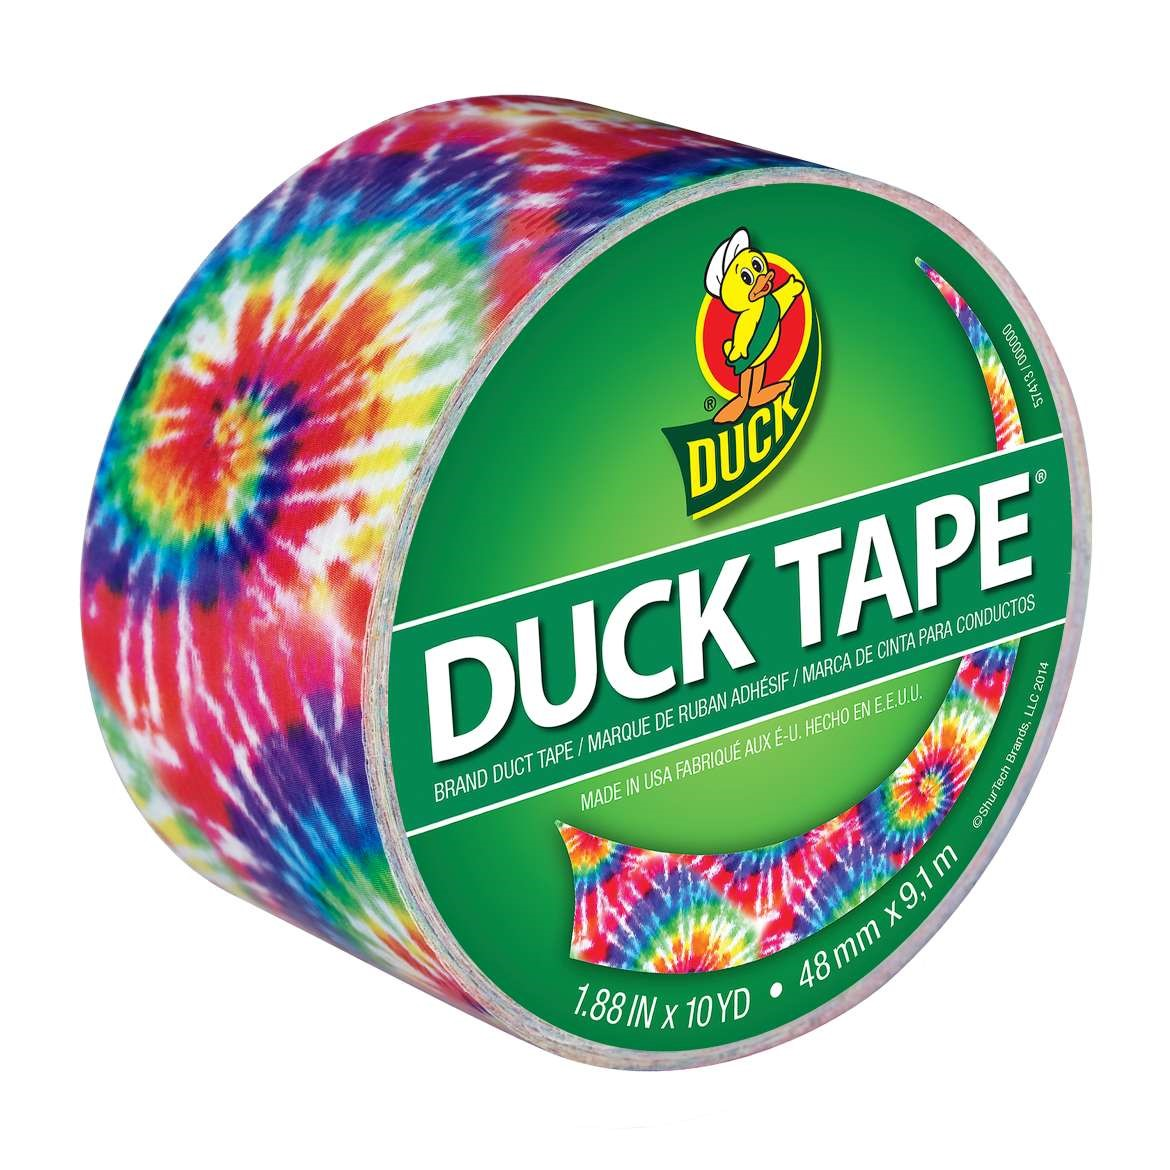 Duck Duct Tape, Love Tie-Dye, 1.88 In x 10 Yd